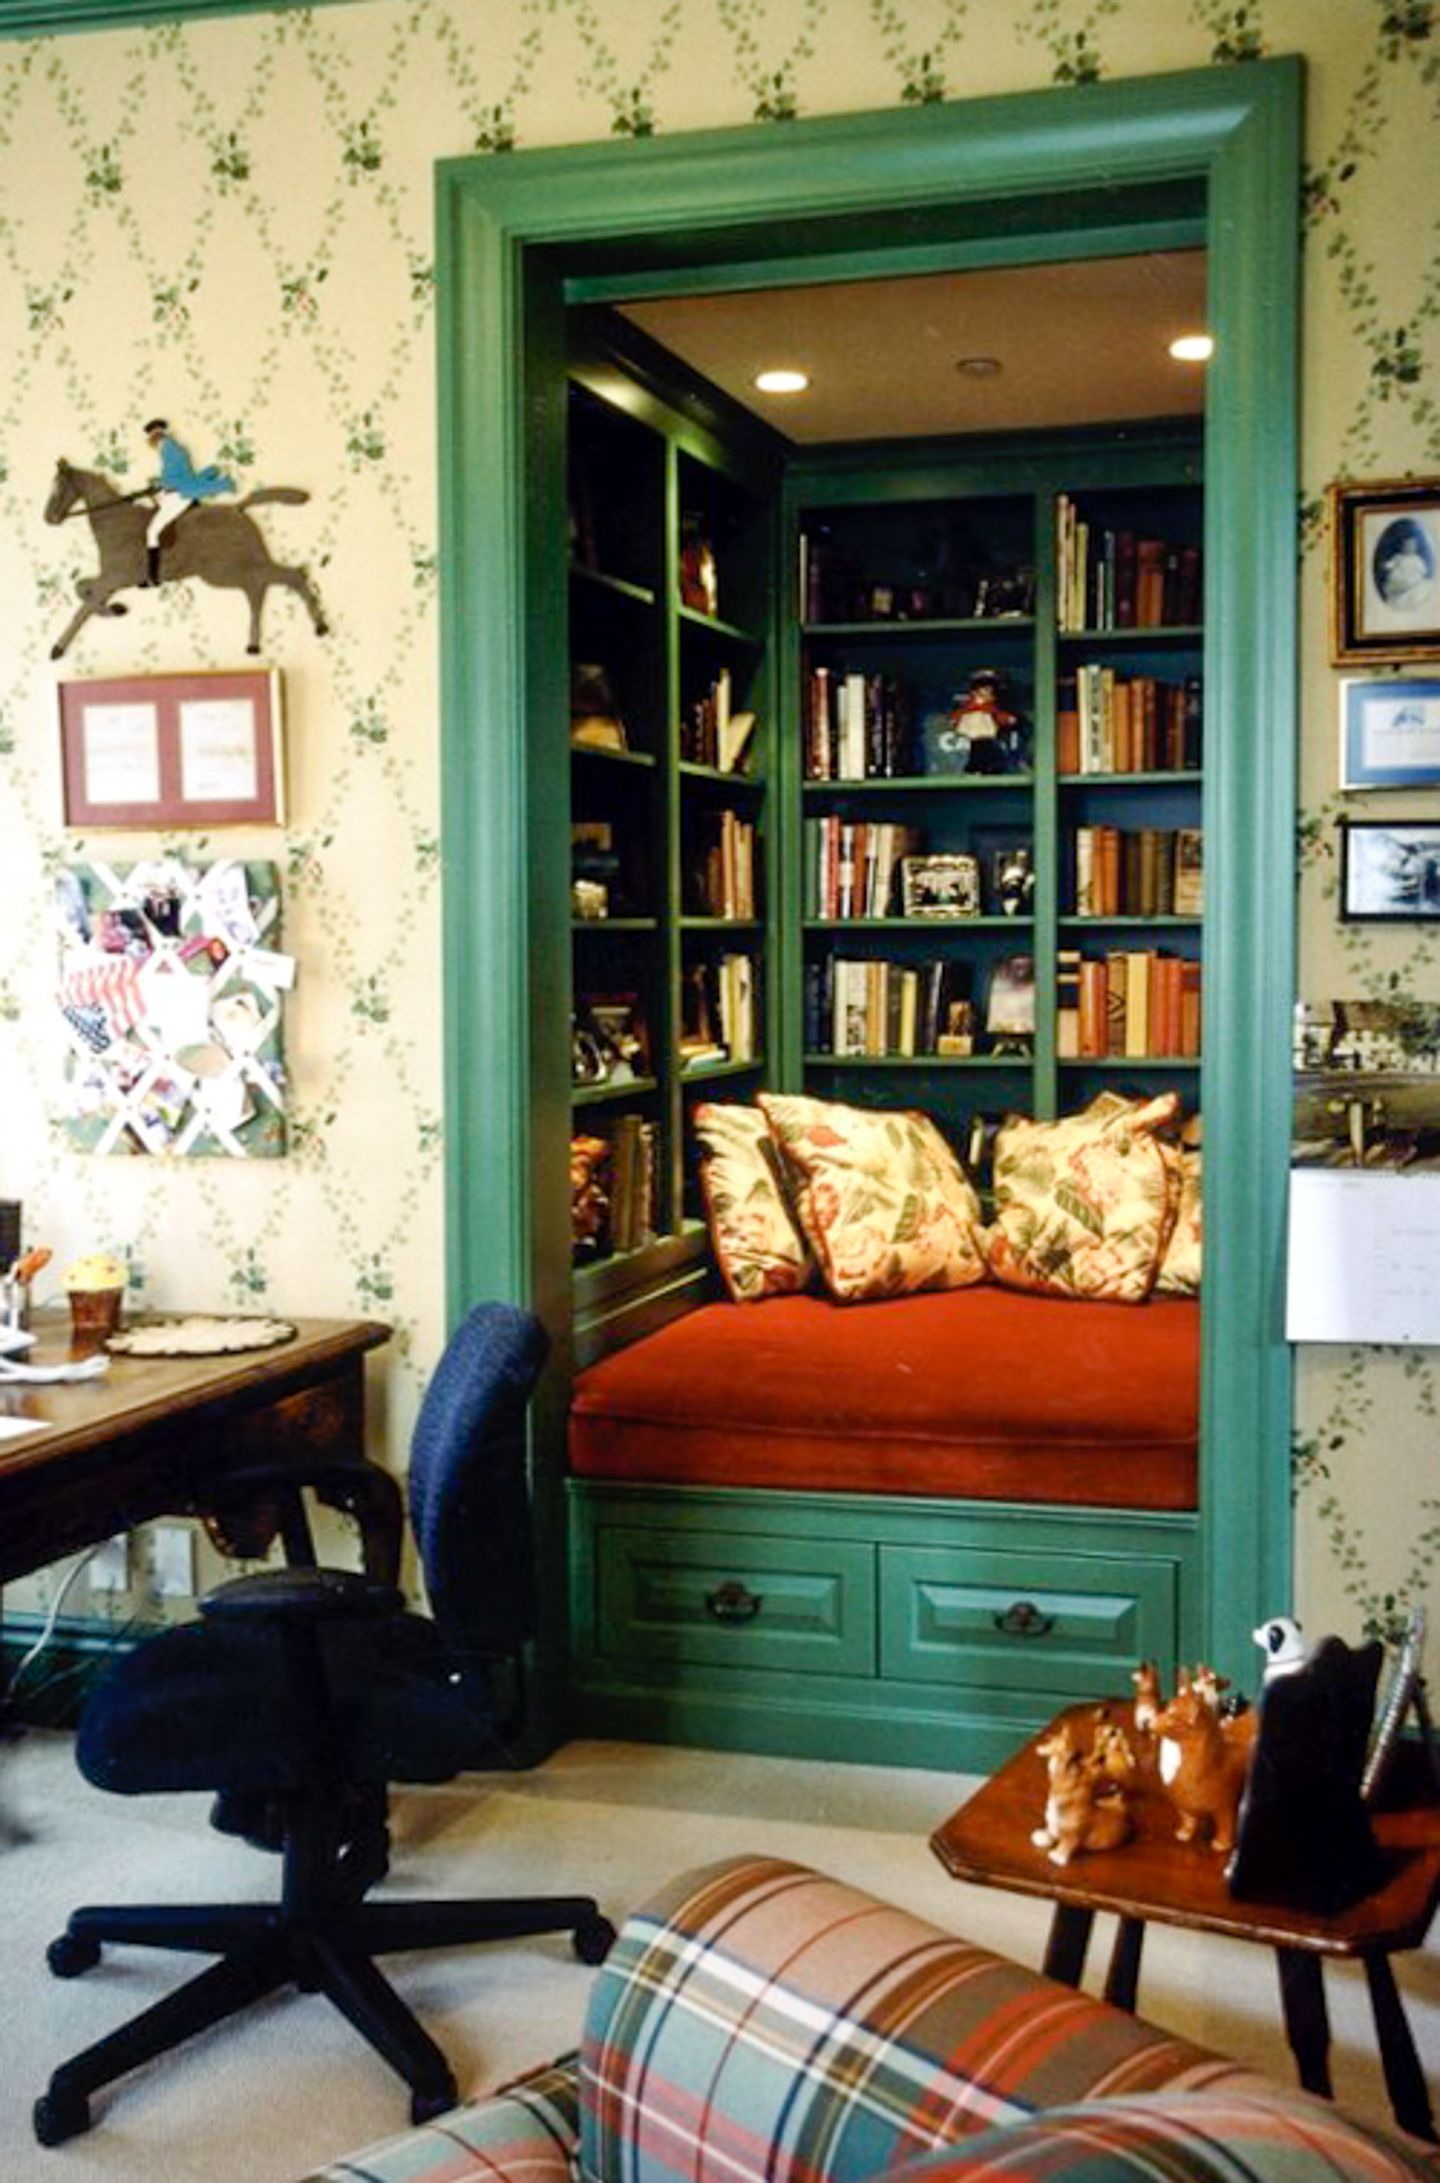 Best Cozy Reading Room Ideas 15 Creative Small Home Library 640 x 480